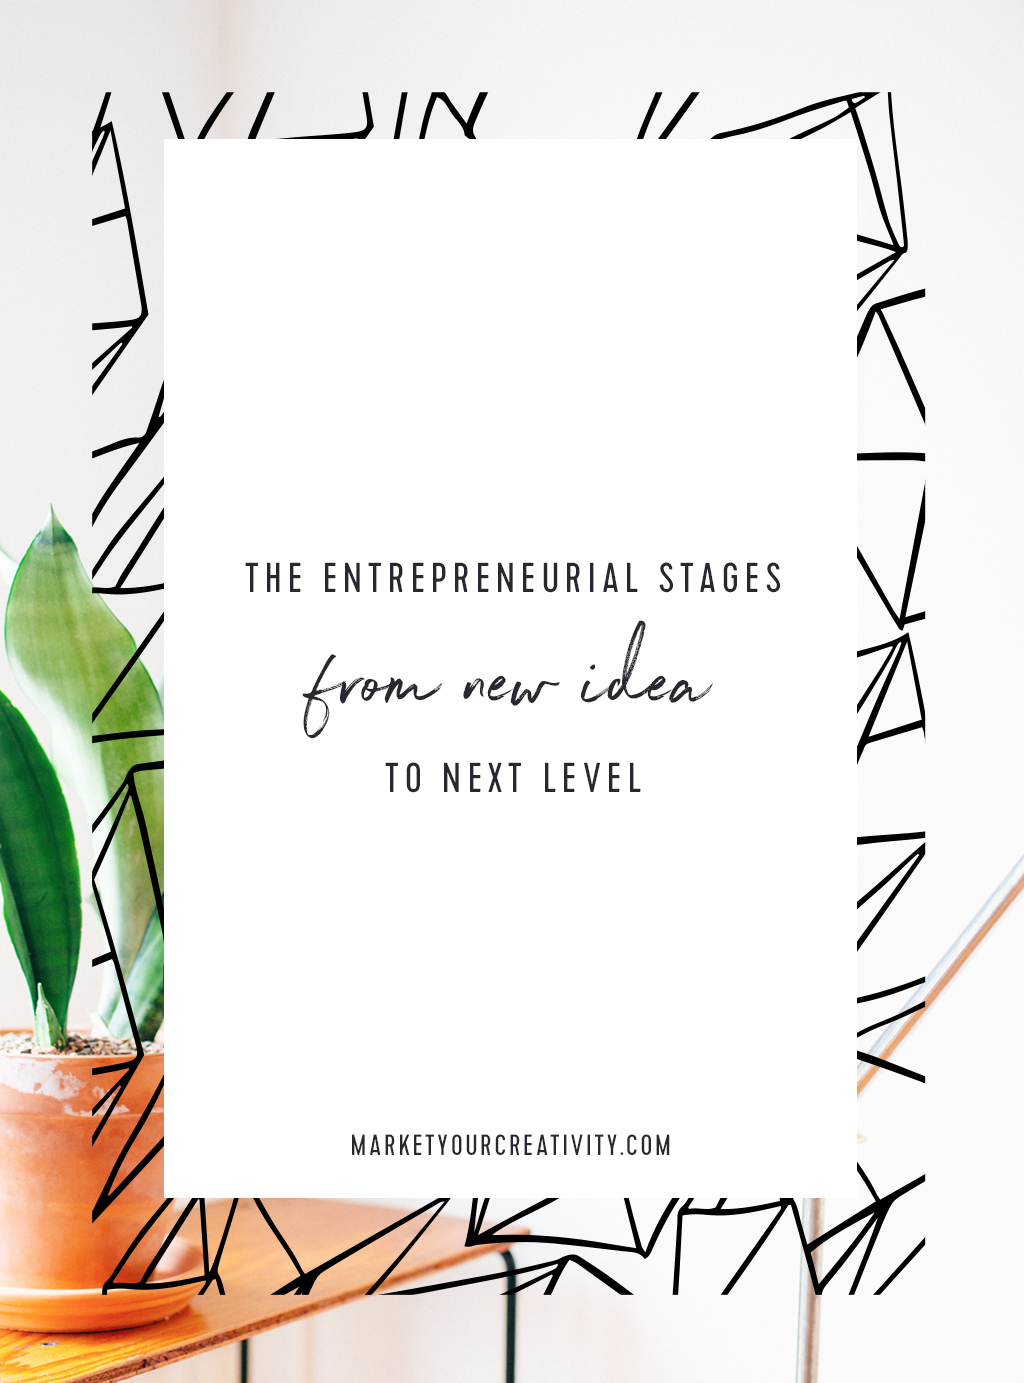 The Entrepreneurial Stages